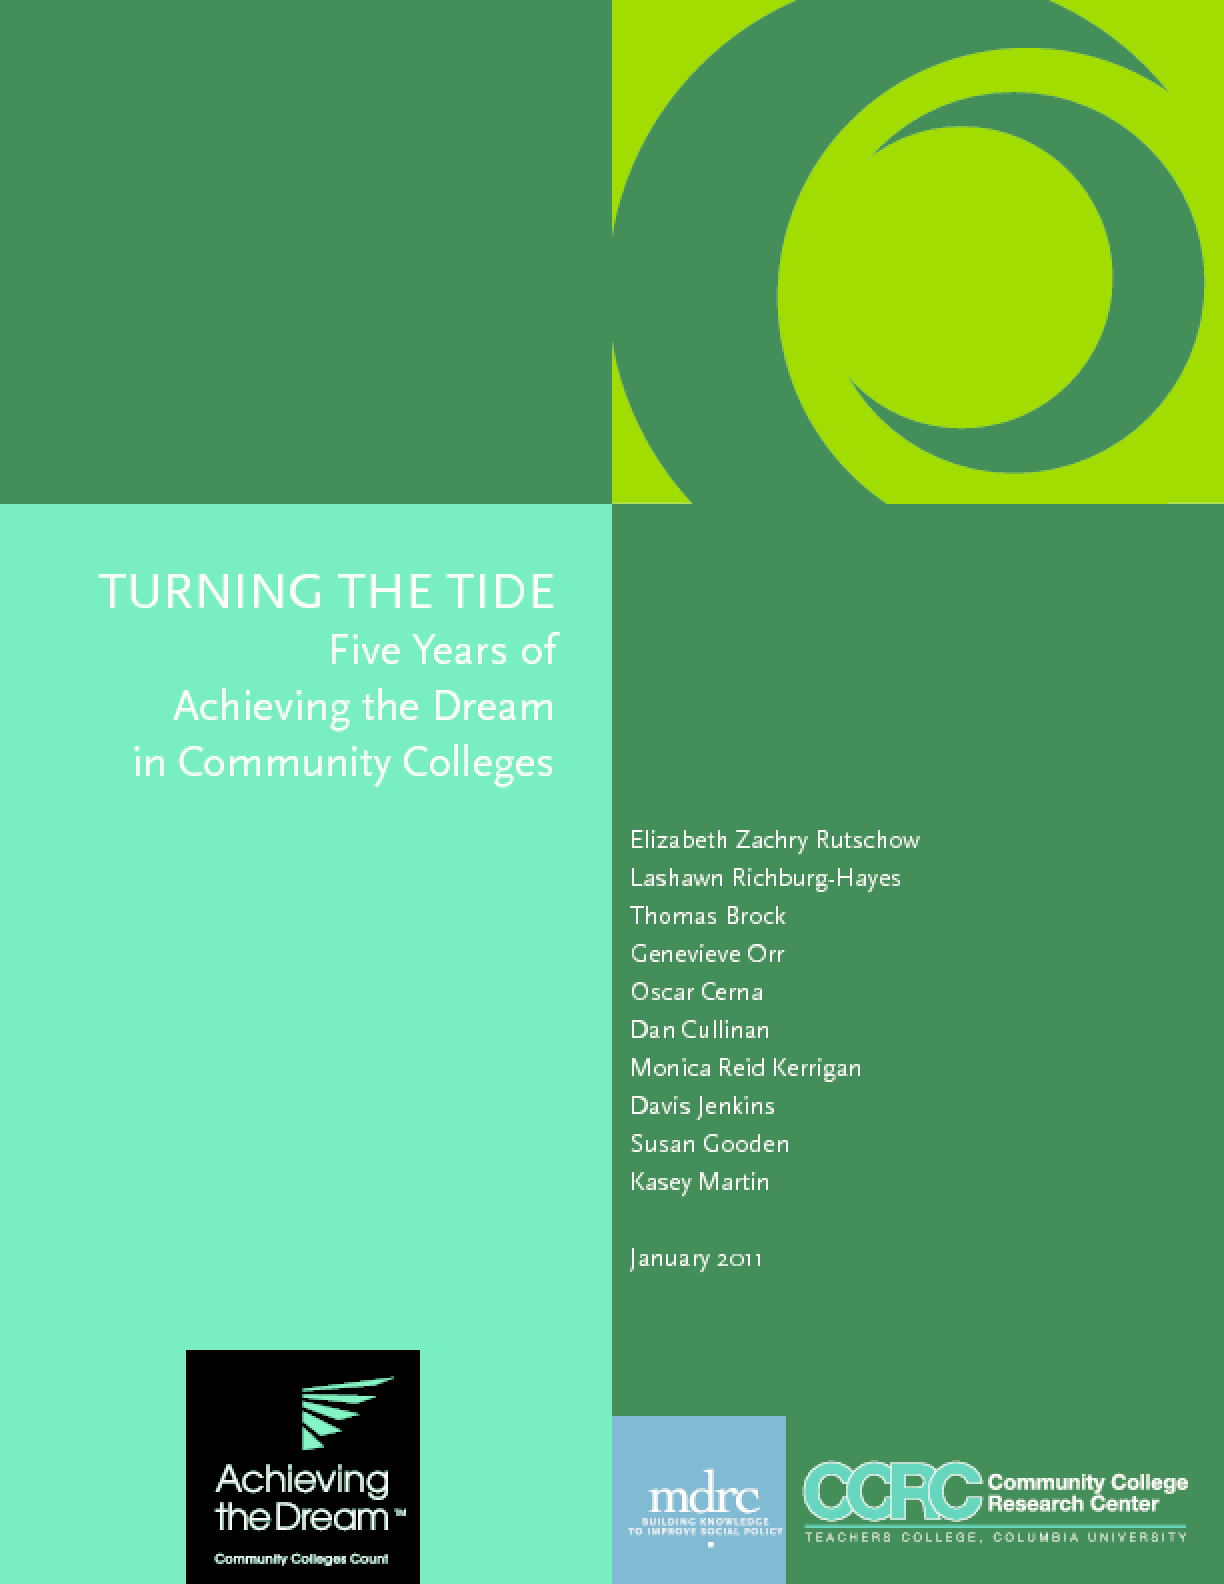 Turning the Tide: Five Years of Achieving the Dream in Community Colleges